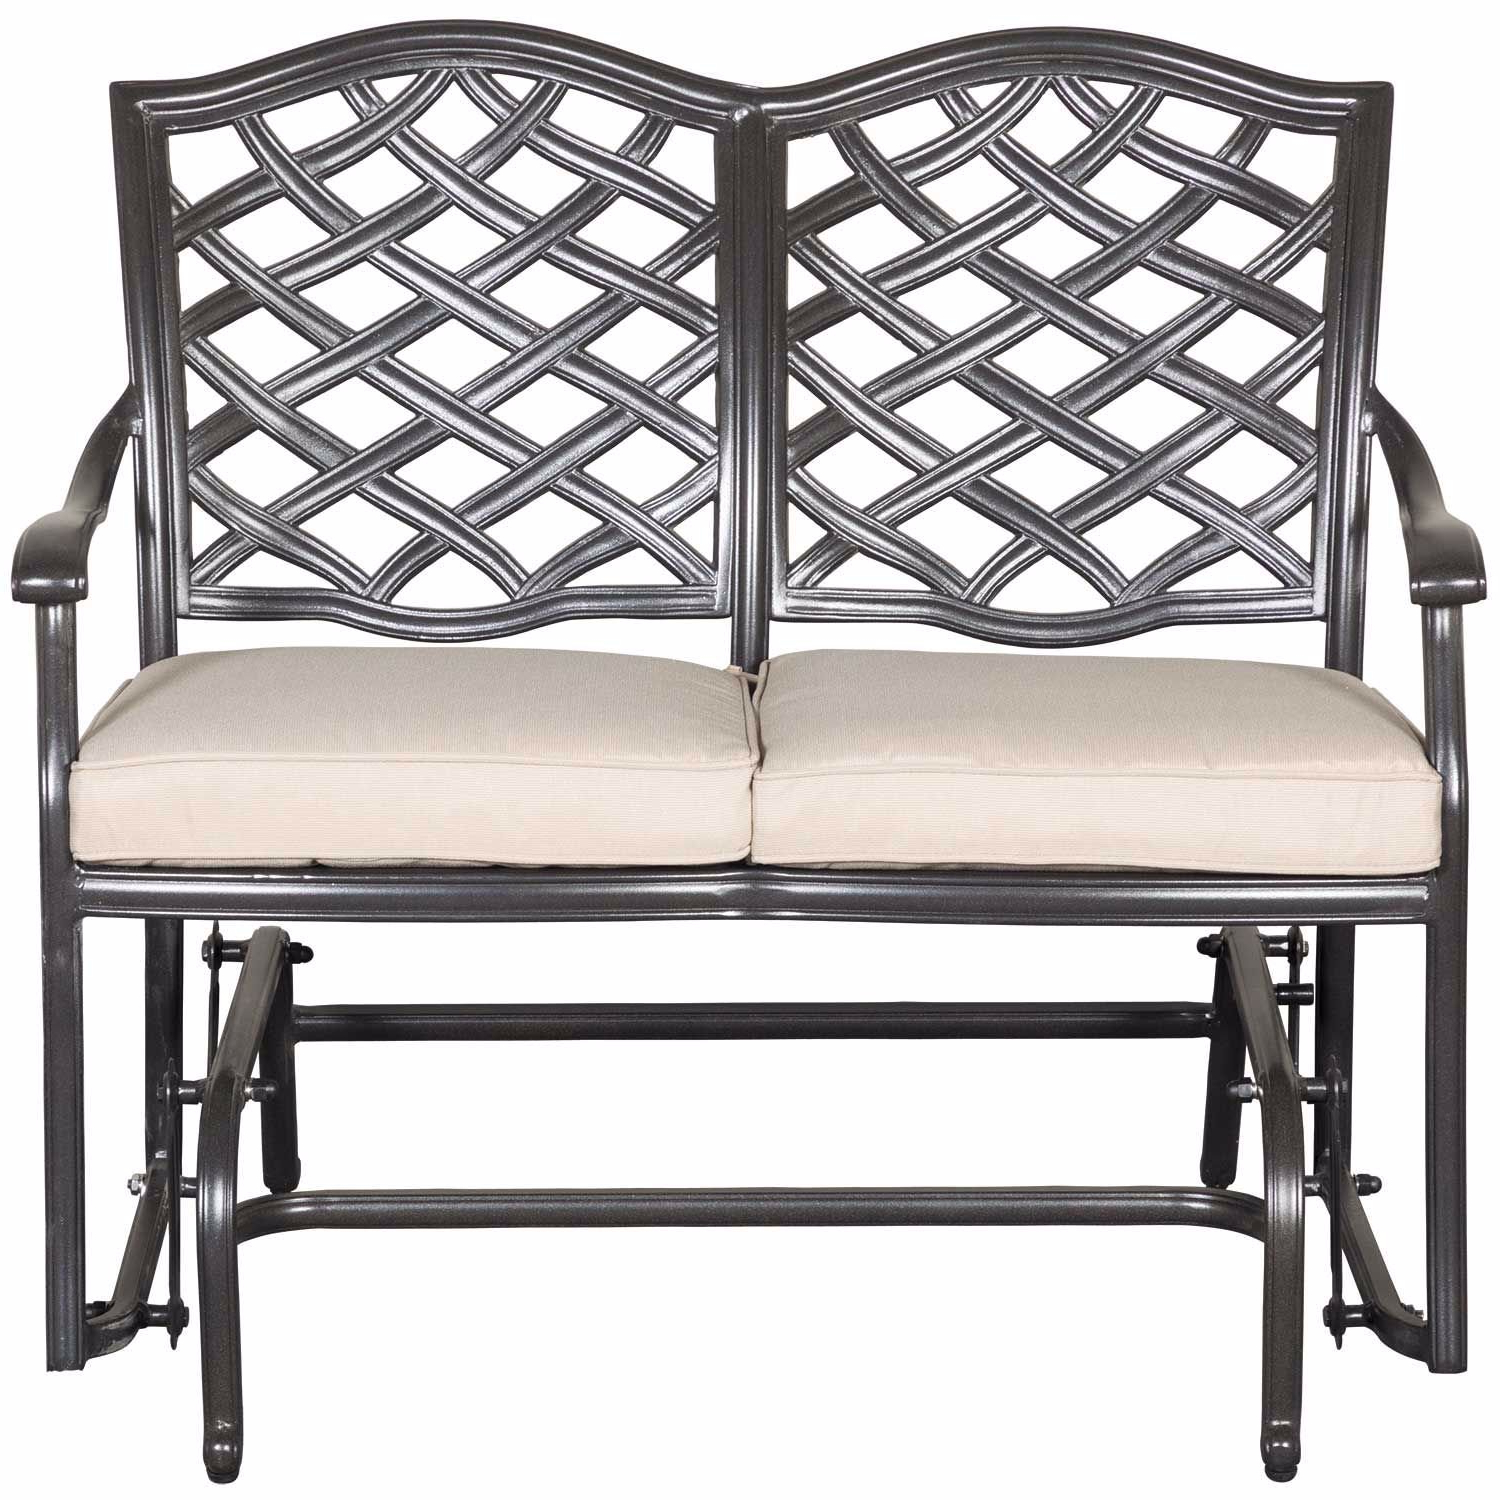 2020 Halston Patio Glider Loveseat With Cushions Within Glider Benches With Cushions (View 2 of 30)